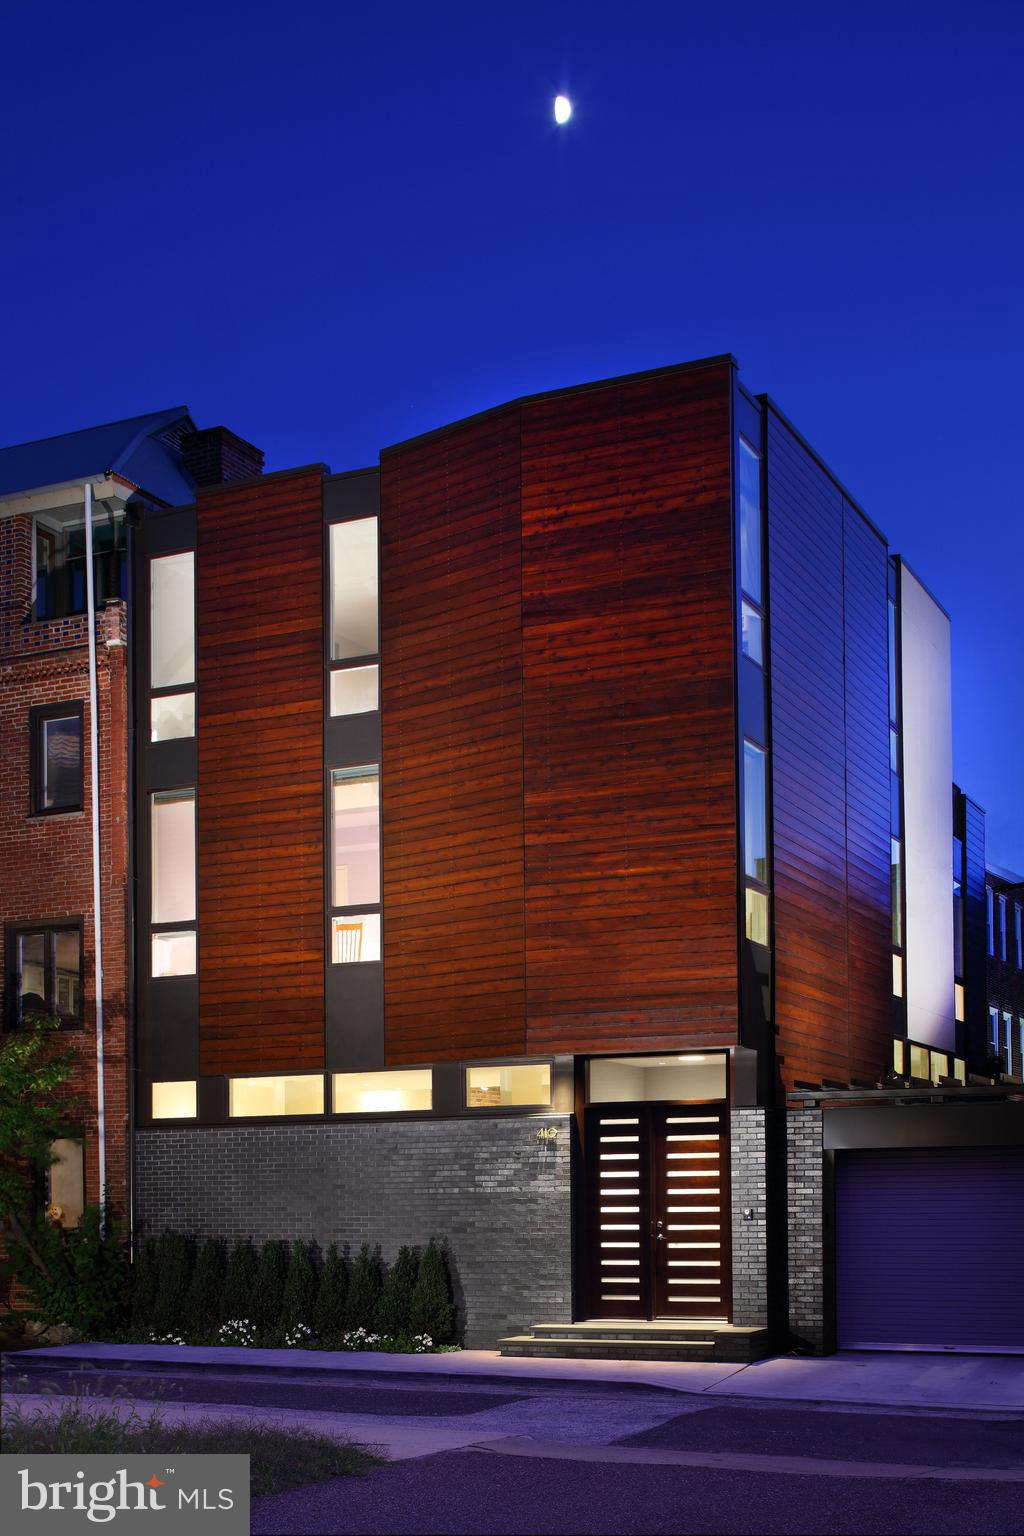 OLIVE RESIDENCE | A Unique Urban Oasis Created for Contemporary  Lifestyles  ||  This extraordinary luxury home, located in the heart of the celebrated Northern Liberties community of Philadelphia, awaits you as a perfect example of balance and proportion. This unique opportunity is offered for sale to a discriminating buyer who loves modern urban design.  ||  The 'Olive Residence', home to a prominent Philadelphia photographer, is a lovely commanding three-story architect-designed custom luxury home optimized for a low carbon footprint and sits on a rare extra-wide deep lot 40'x75'.  A delightful integration of formal and informal space is what makes this home so enjoyable for living.  The curb view features an anthracite brick base and a cedar rain screen above with a sweeping south-facing private garden to the rear. The interior is graced with deftly executed details, numerous refined amenities, and a thoughtful selection of materials, and textures.  ||  The first level unfolds with an expansive open plan that flows from the kitchen, with a dedicated walk-in pantry and a massive island counter, across the living area with soaring ceilings and custom LED lighting, outdoors to a landscaped private garden, a cherished retreat from your active lifestyle. The master suite overlooks the garden and two additional bedrooms are neatly nestled on the second level, while the third level greets you as a large open plan studio or office that adjoins a generous terrace, and an additional bedroom. Lower Level Storage. Gated two-car parking is neatly tucked to the side of the home.  ||  Enjoy a short stroll to restaurants, and shopping, the Metro, Septa, and all that the vibrant community of Northern Liberties has to offer. Specifications and Plan View Document Available.